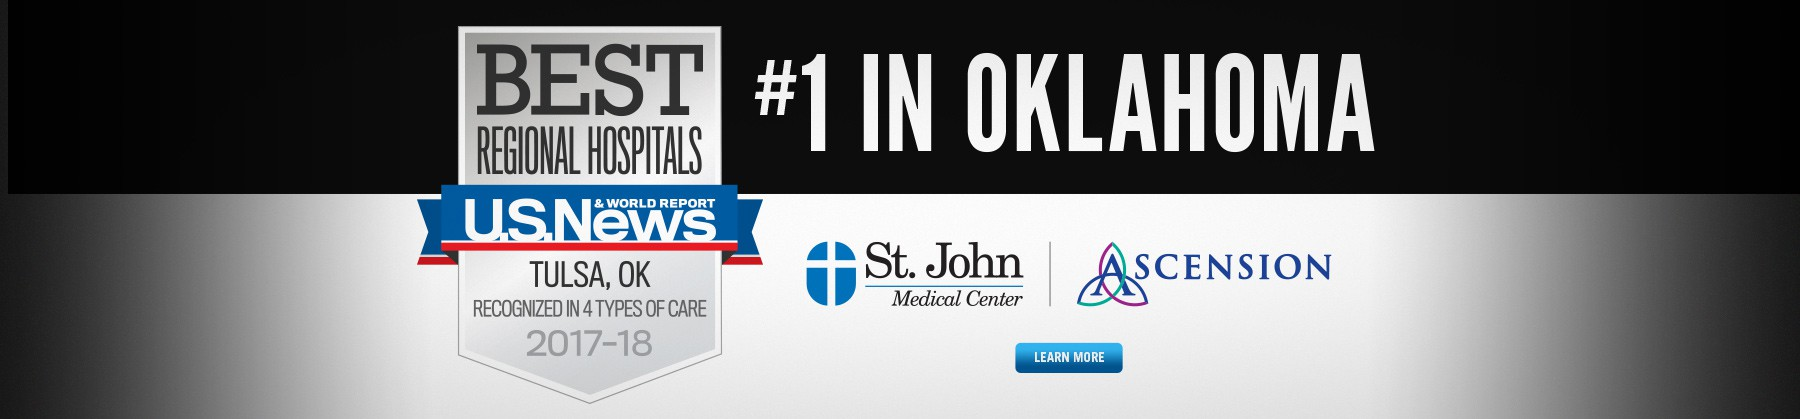 St. John Medical Center Named No. 1 Hospital in Oklahoma by U.S. News & World Report